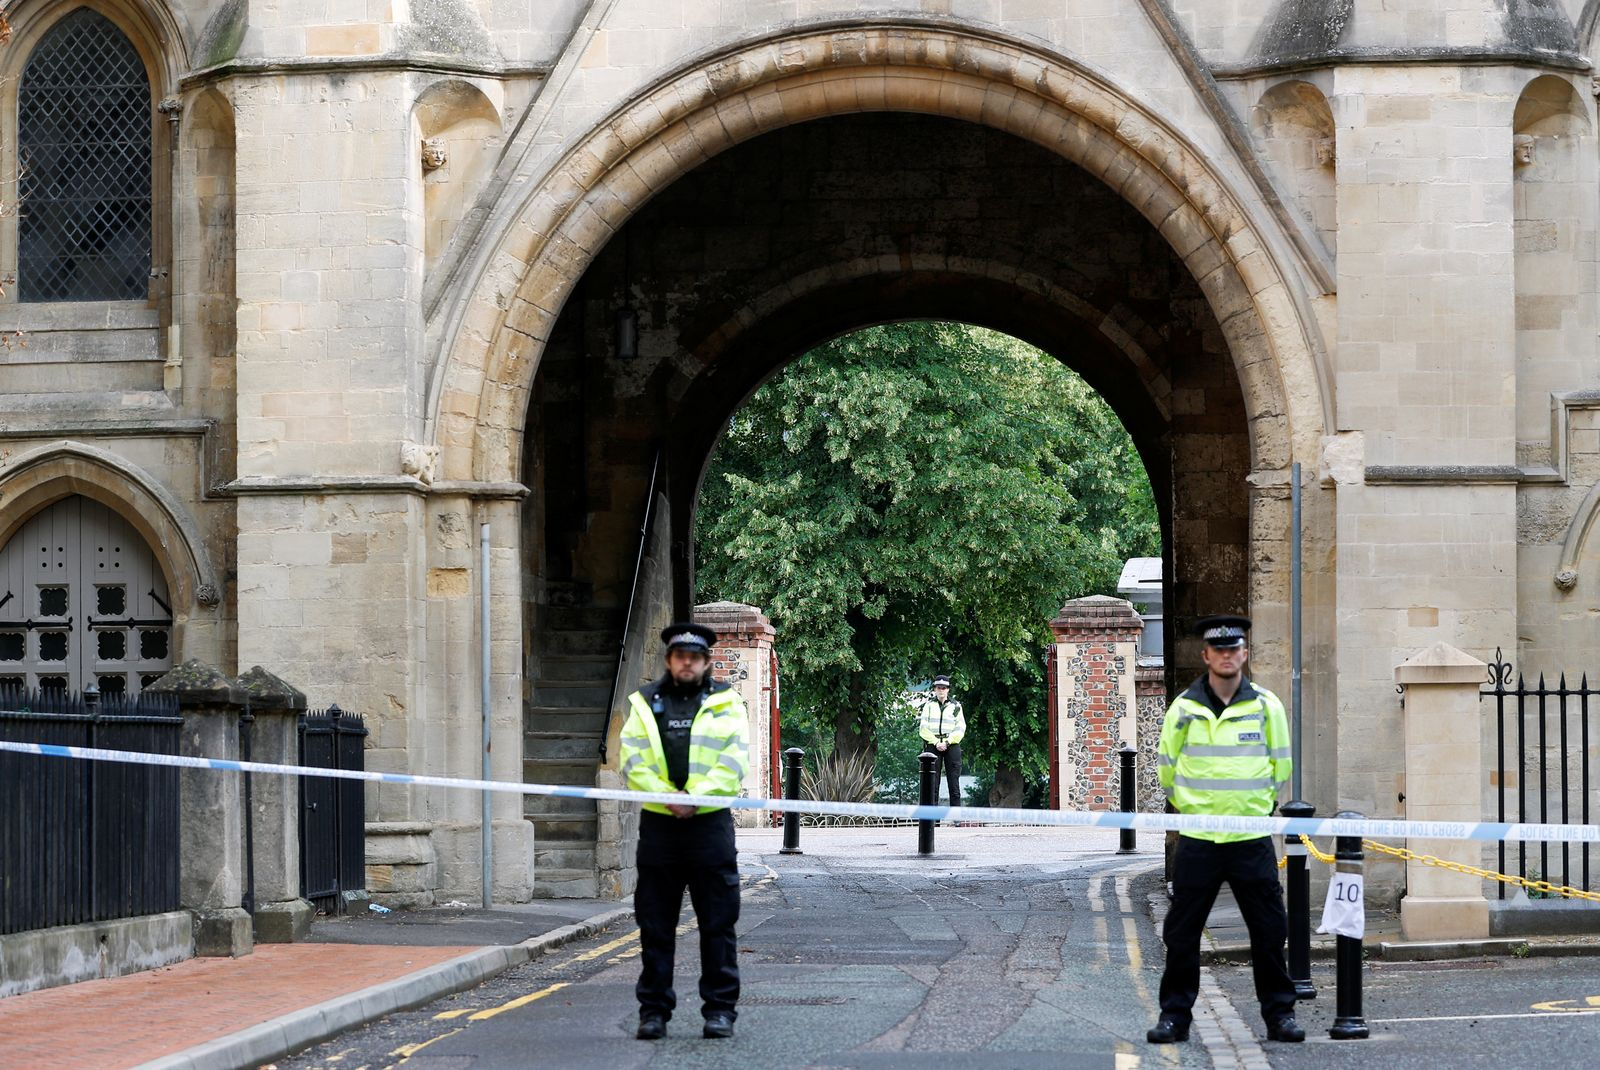 Police officers stand behind the cordon at the scene of multiple stabbings in Reading